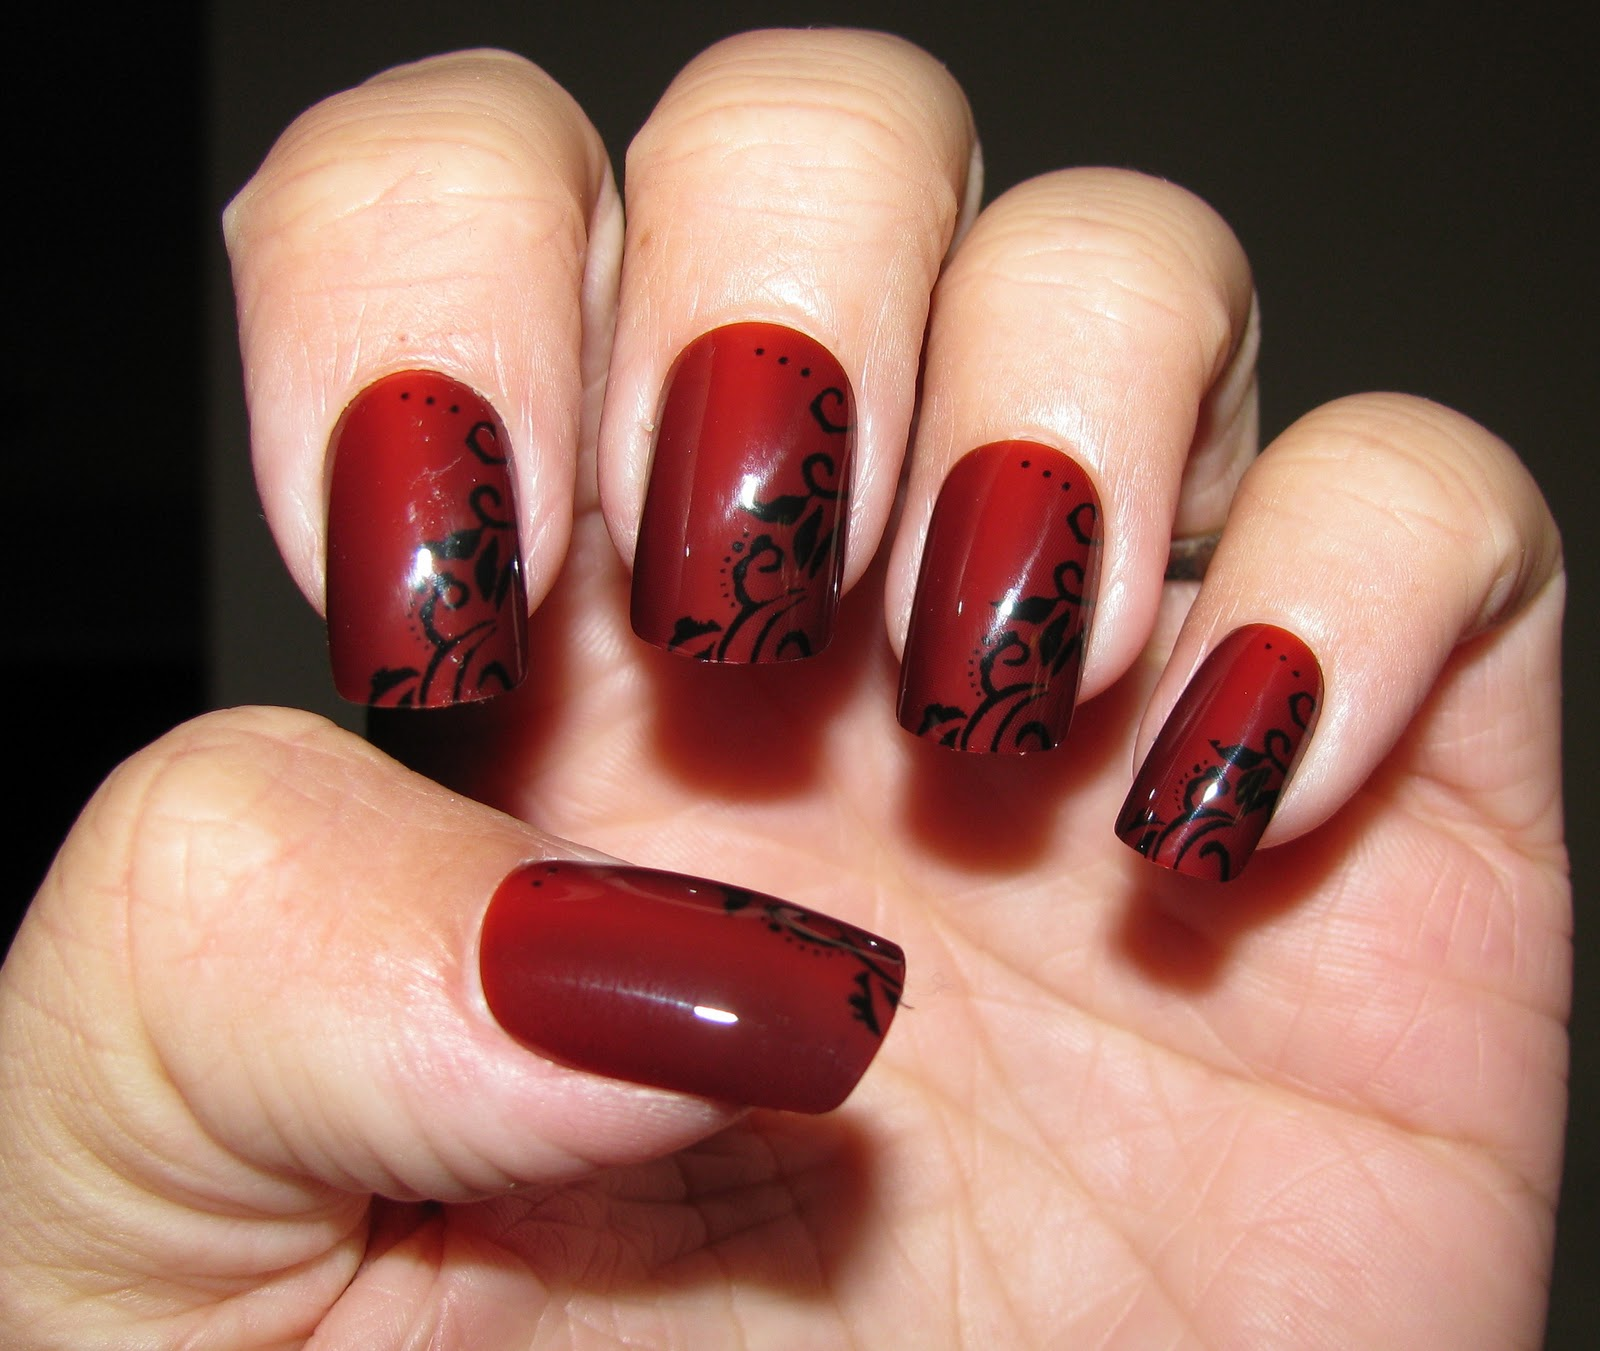 Nail'd & Polish'd: Kiss Halloween Nails